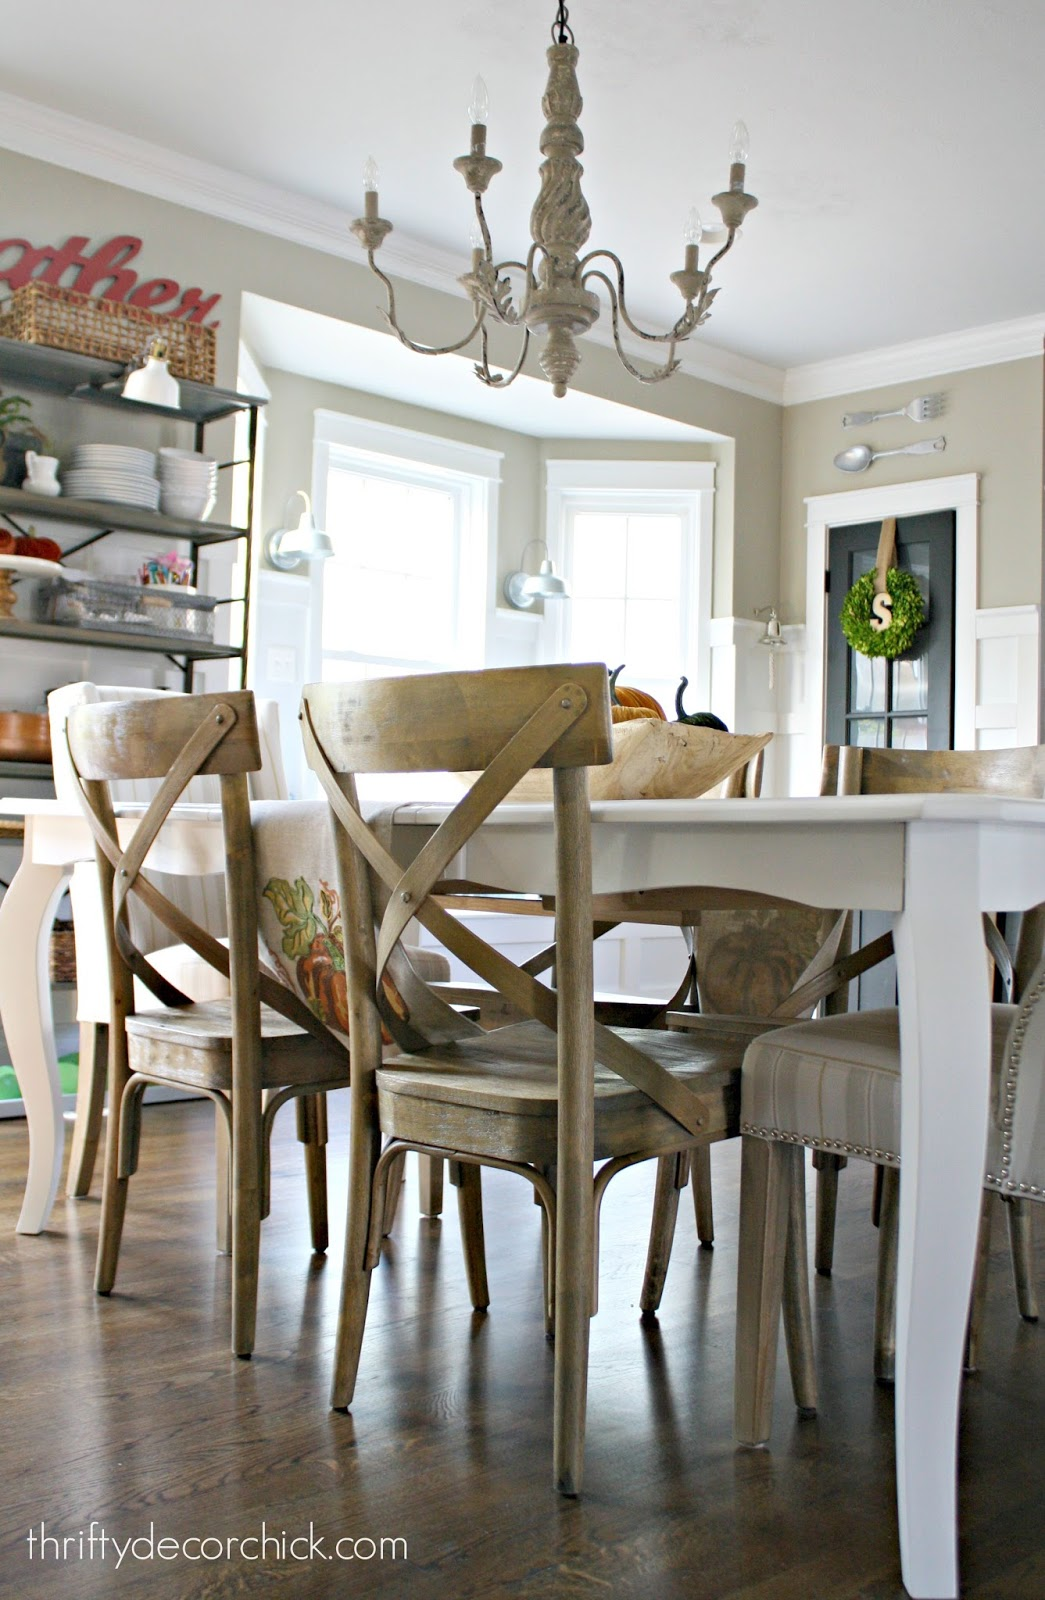 How to paint a kitchen table from thrifty decor chick white kitchen table wood chairs watchthetrailerfo